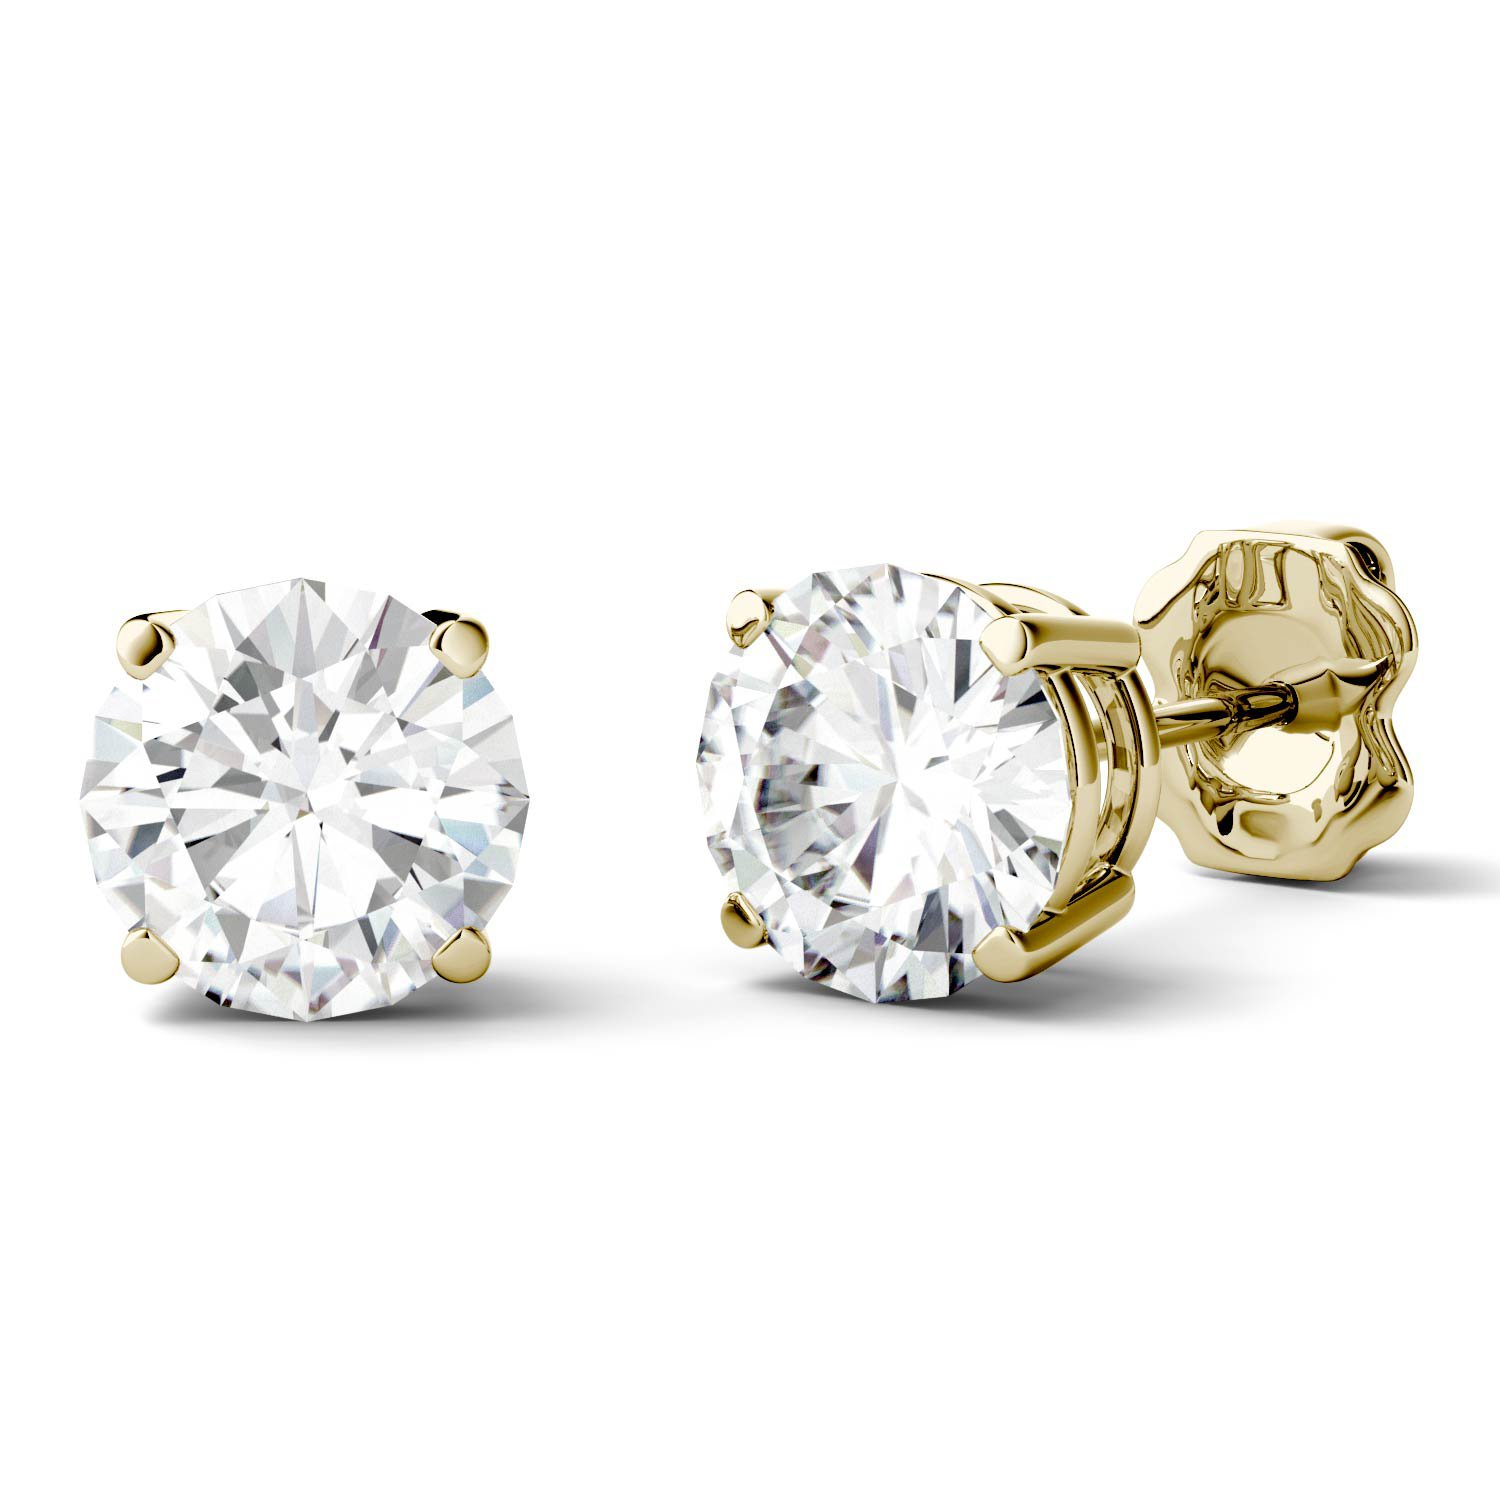 brilliant moissanitestud moissanite white cut round gold earrings stud itm ct certificate